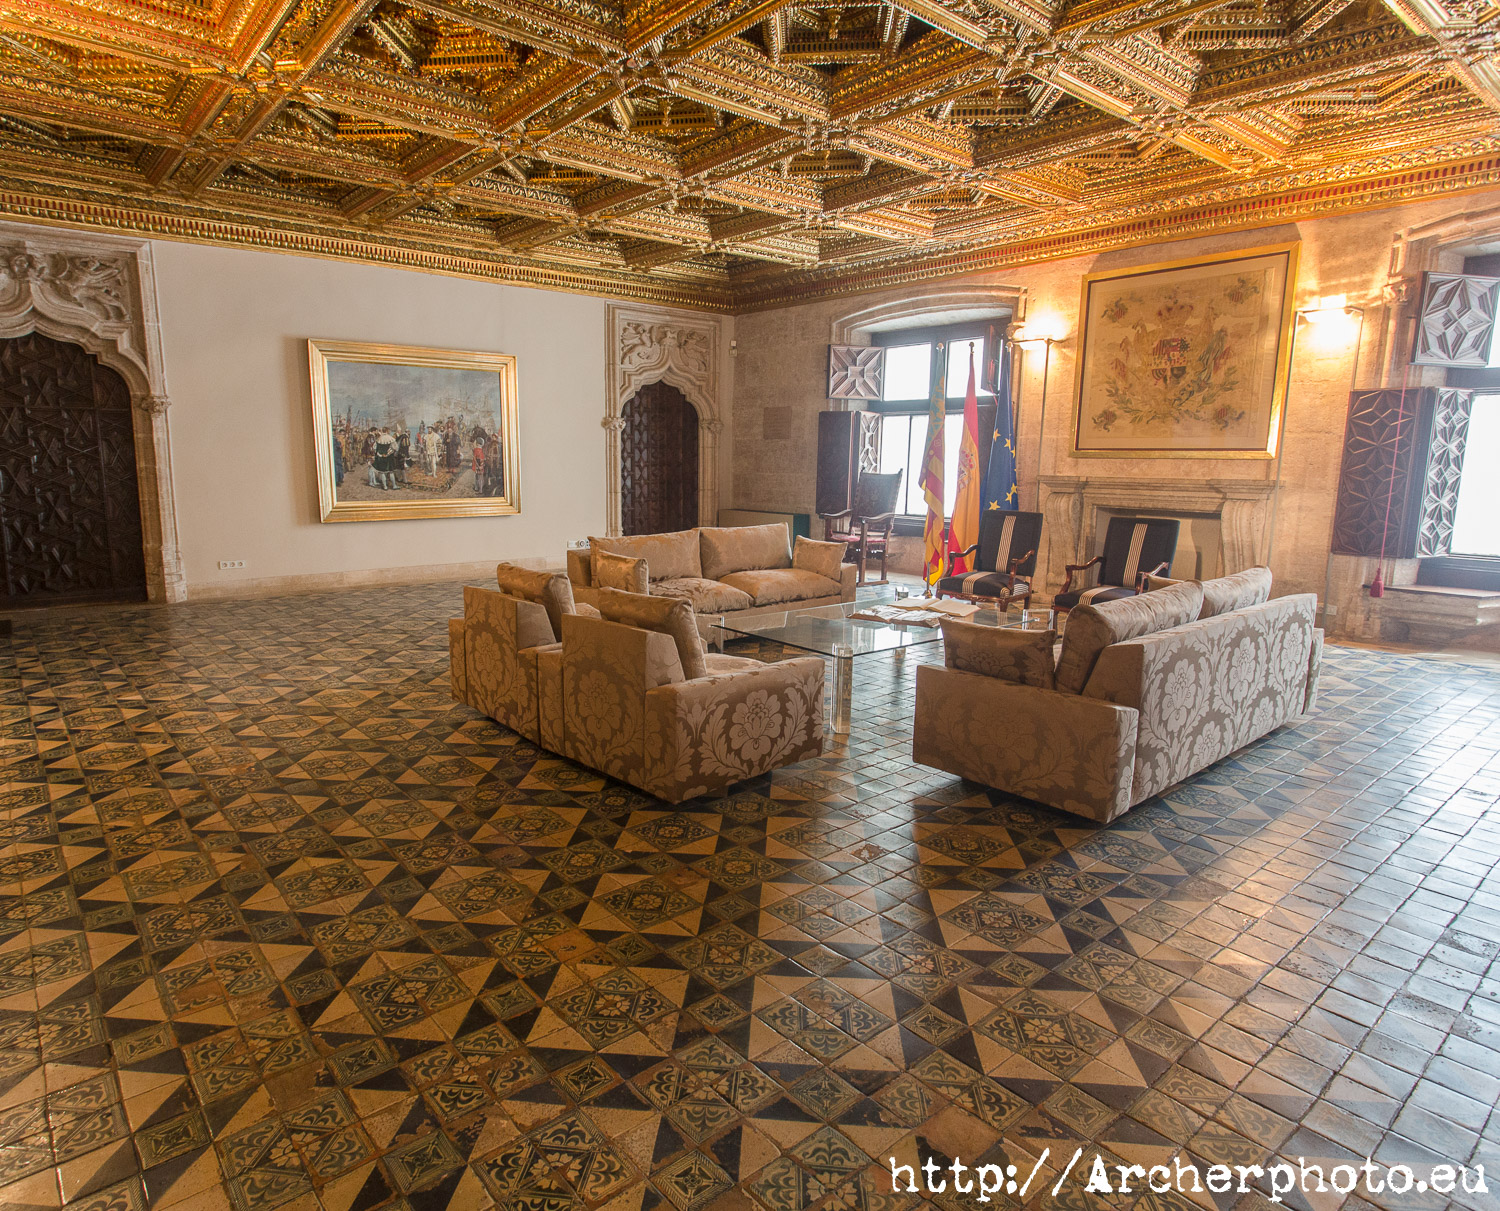 4 reasons to visit Valencia, Palau de la Generalitat, by Archerphoto, professional photographer.